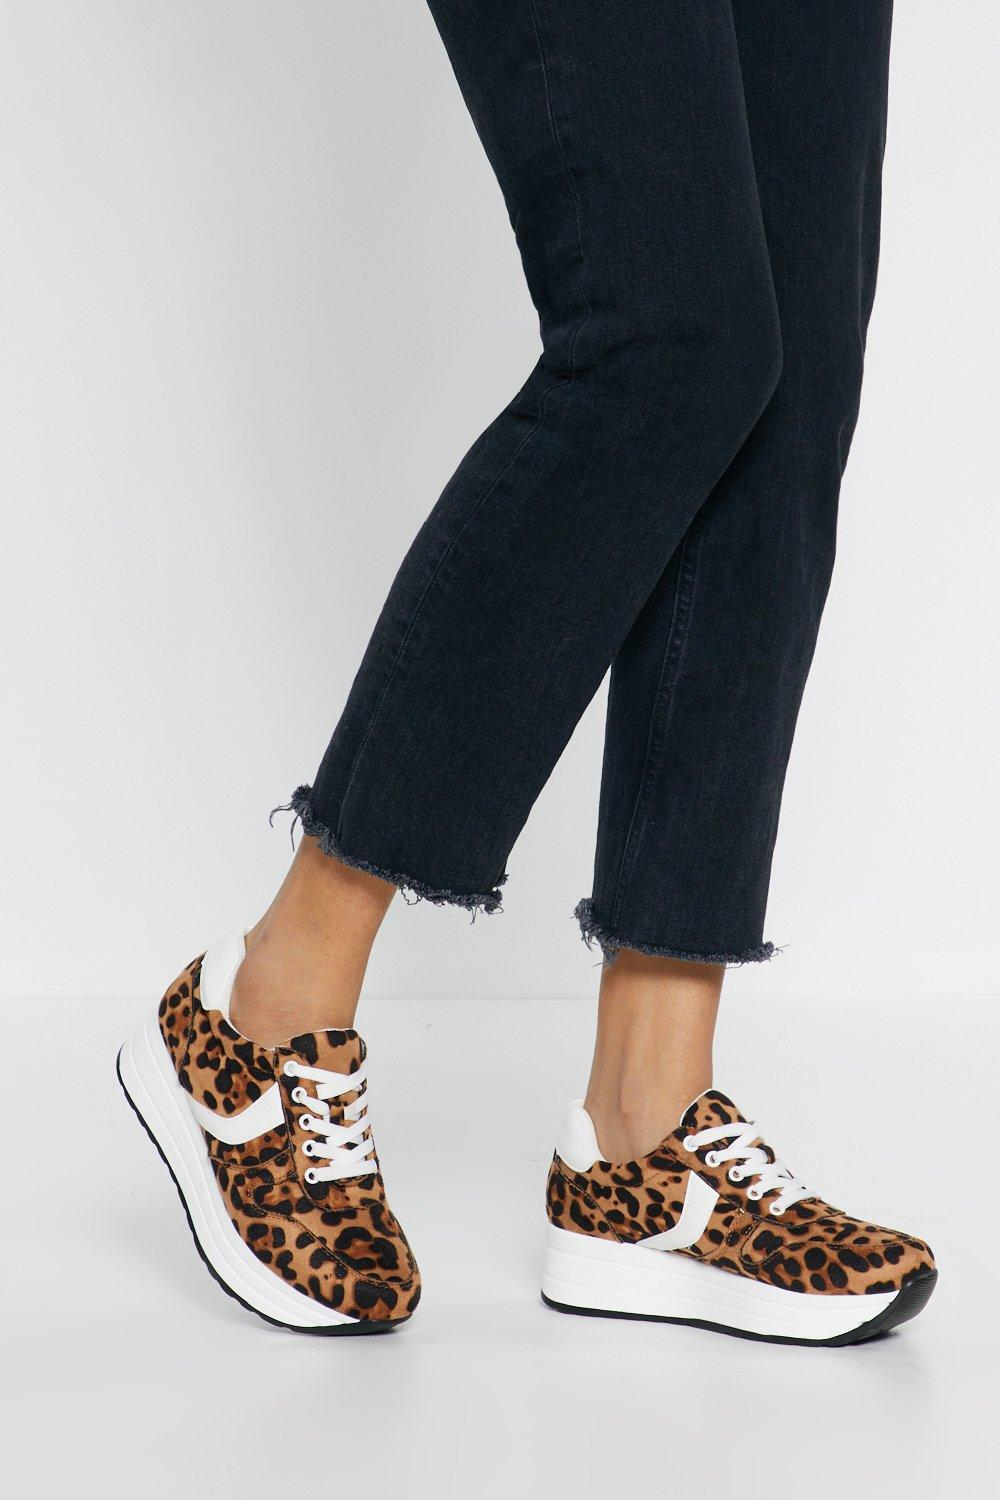 cd6b2e955c8 Leopard Print Flatform Sneakers | Shop Clothes at Nasty Gal!